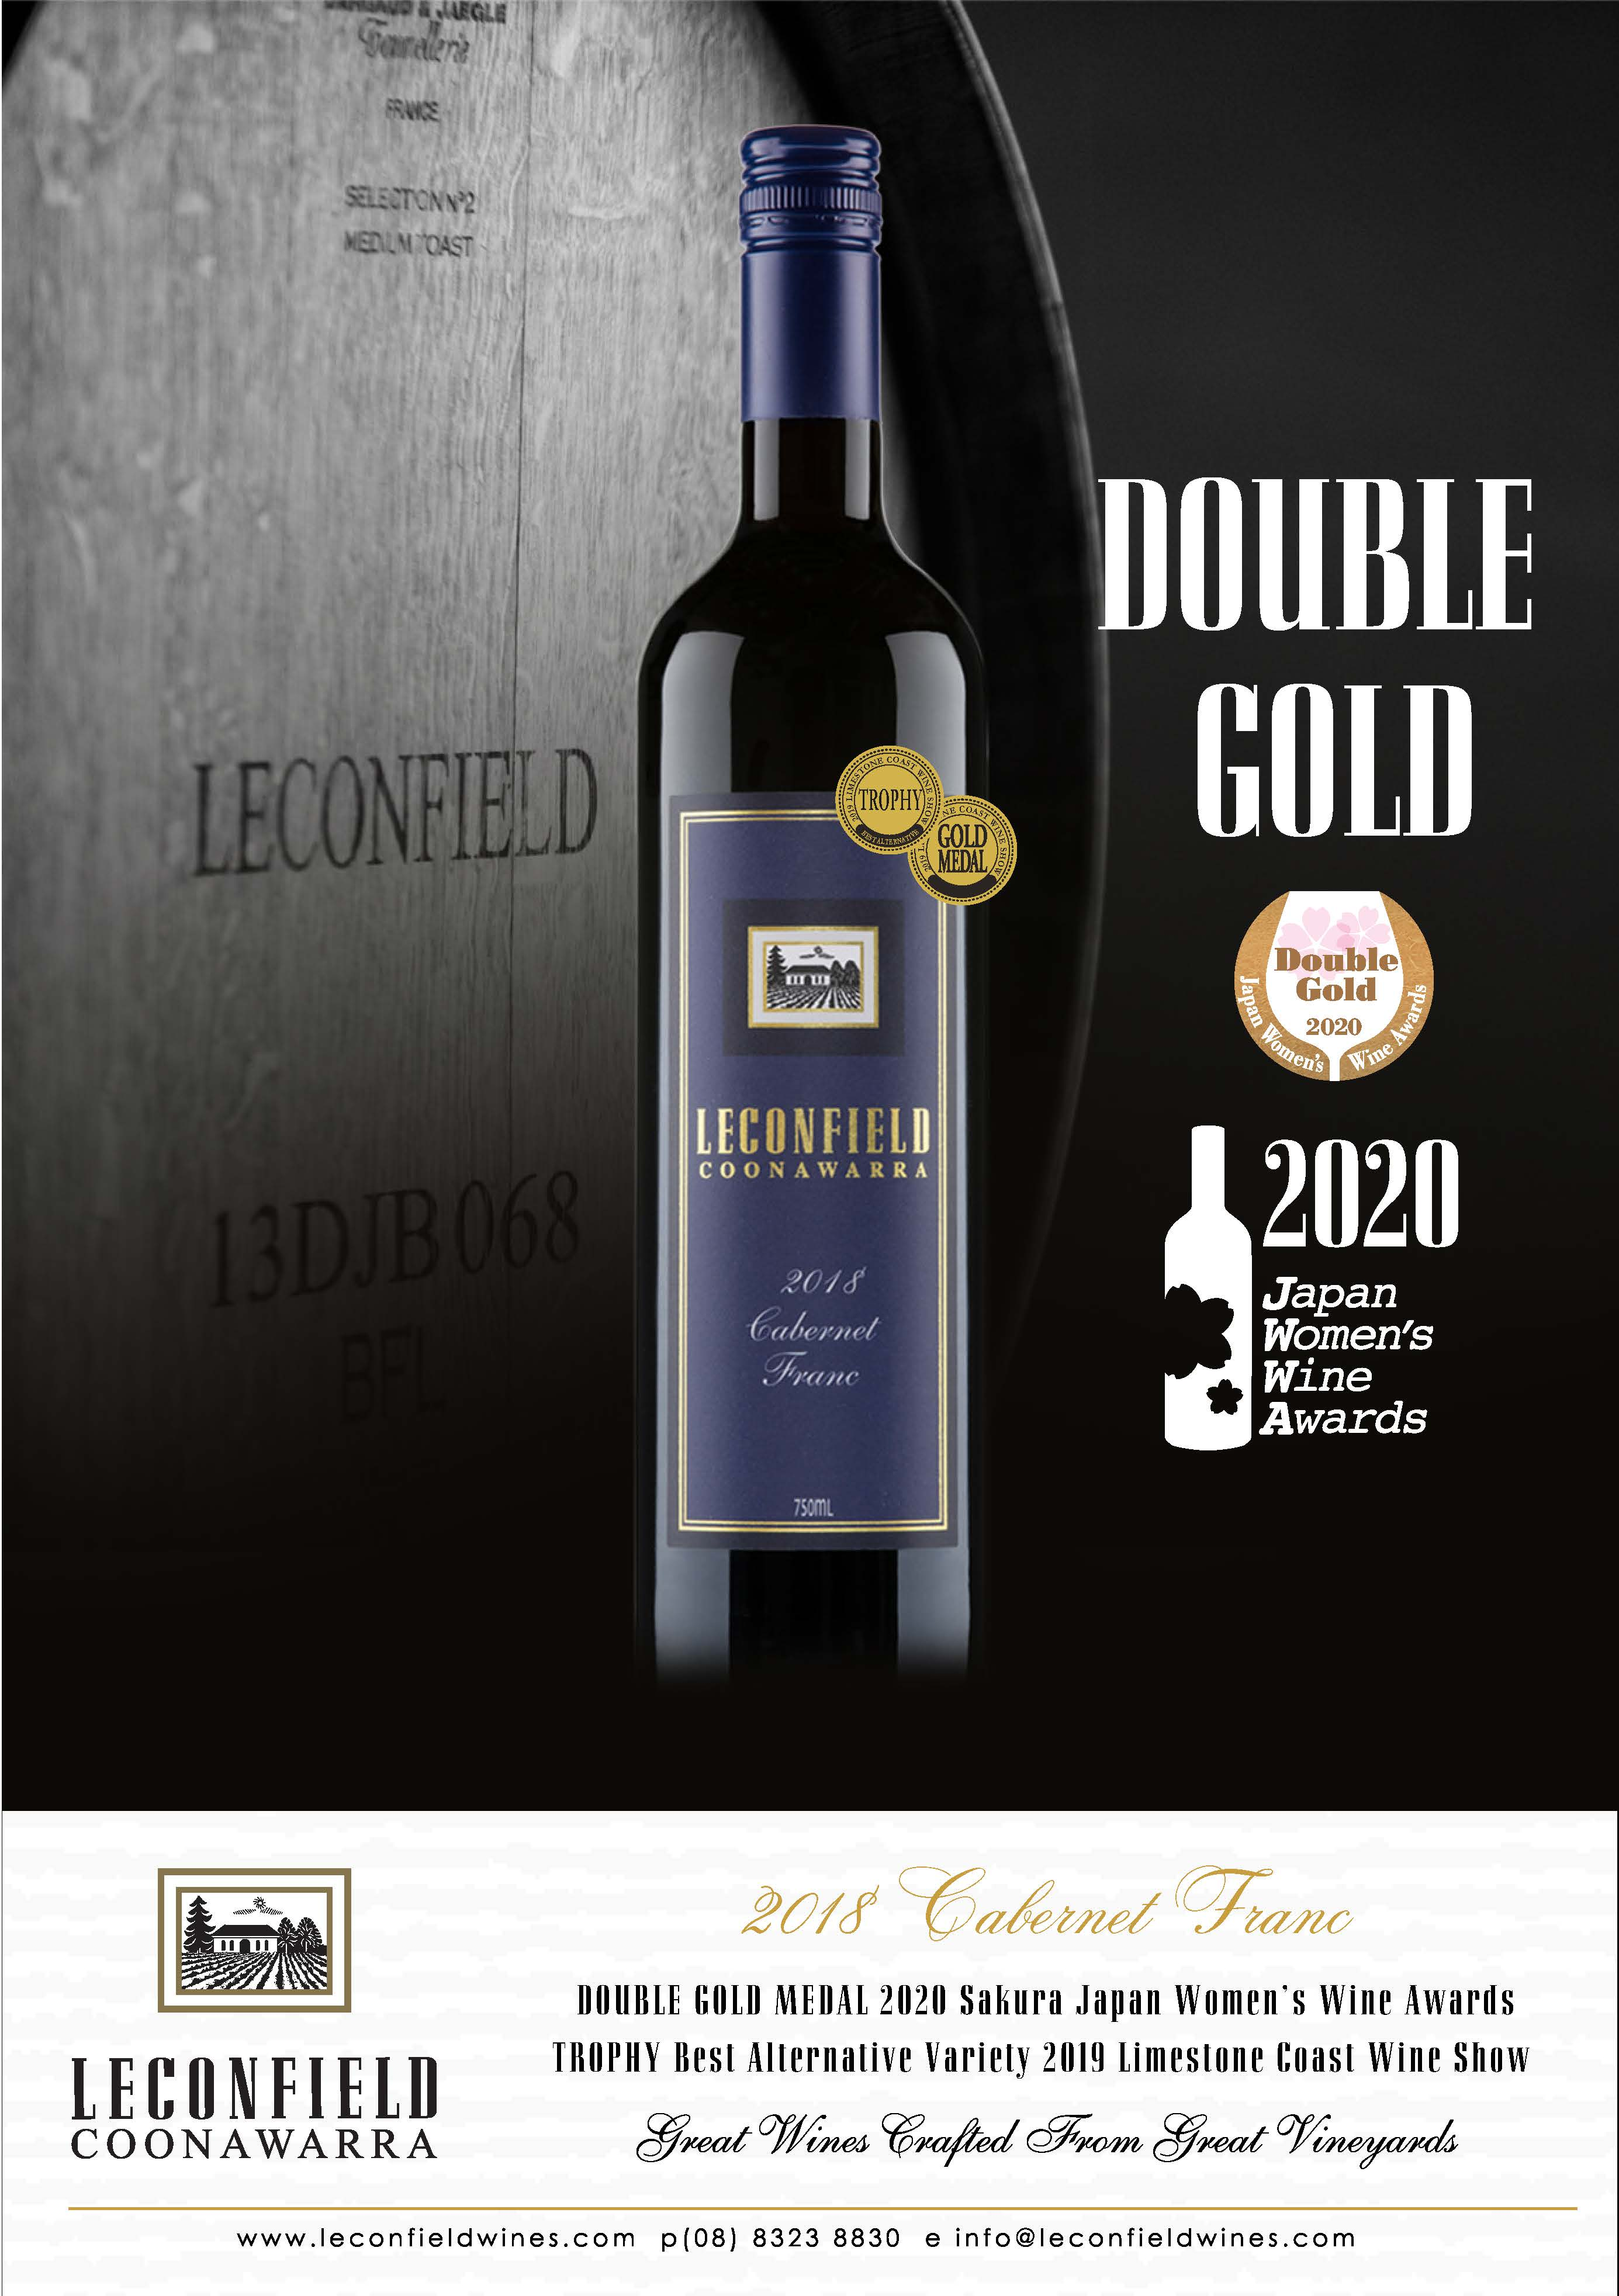 Four Double Gold Medals for Leconfield & Richard Hamilton Wines